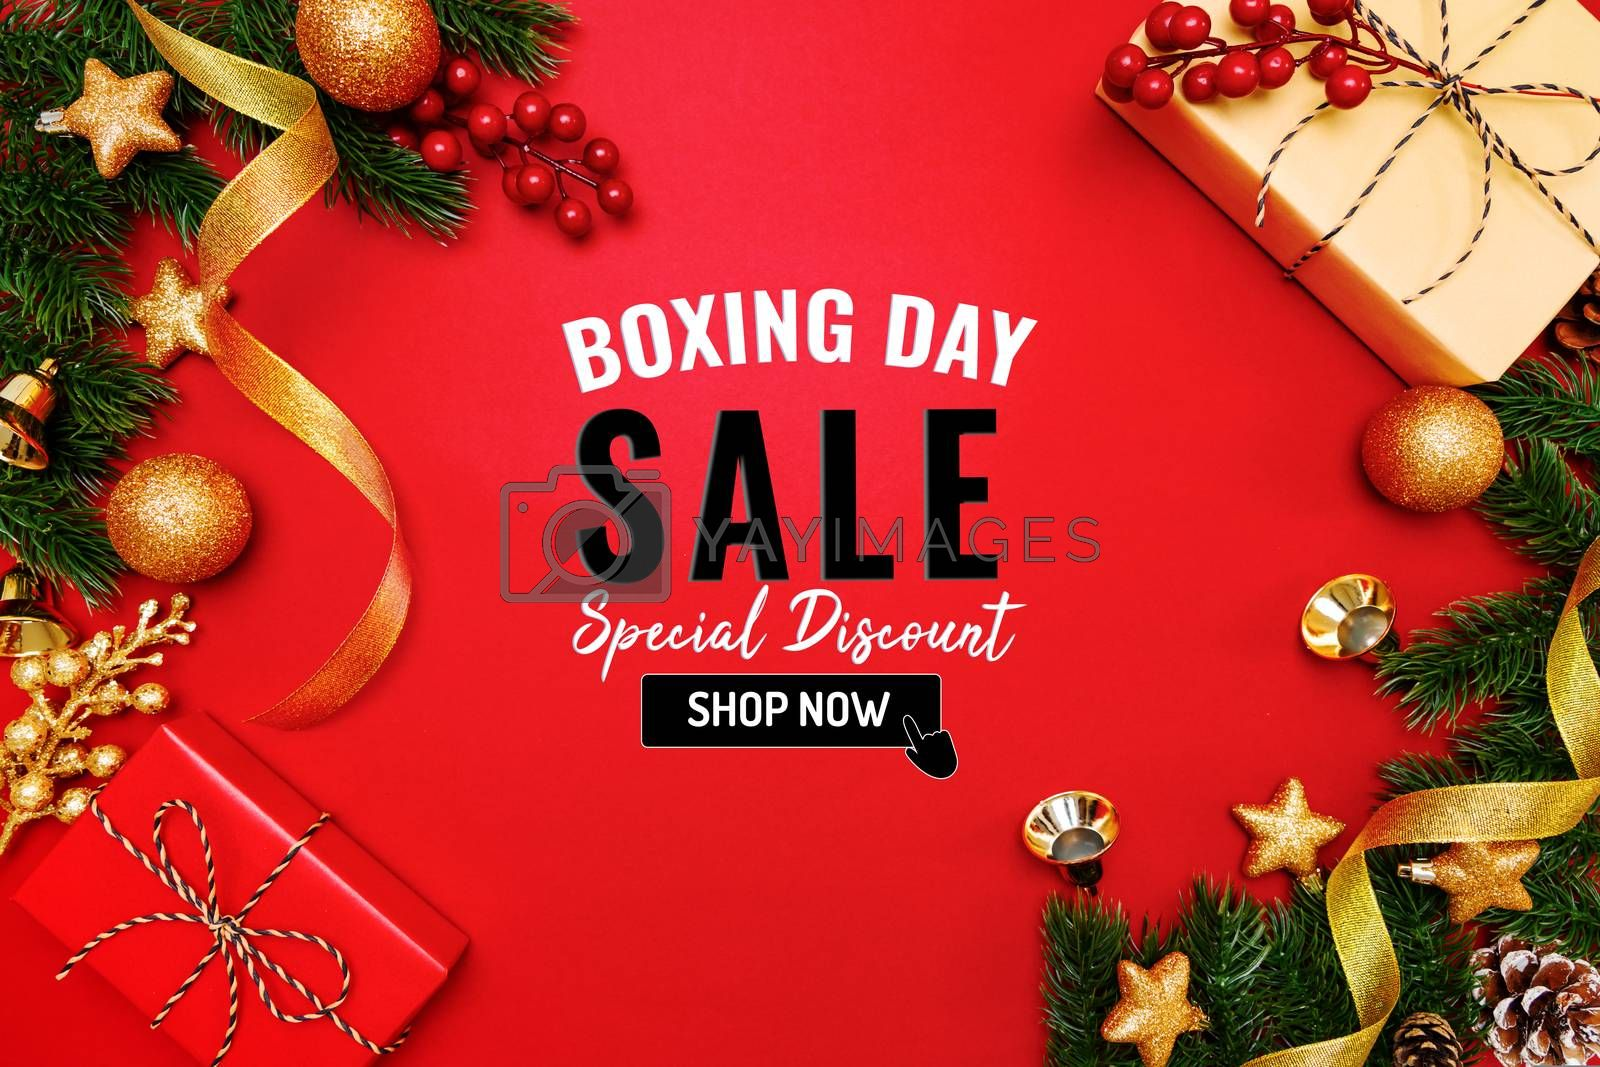 Boxing day sale with Christmas present and xmas decoration on red background